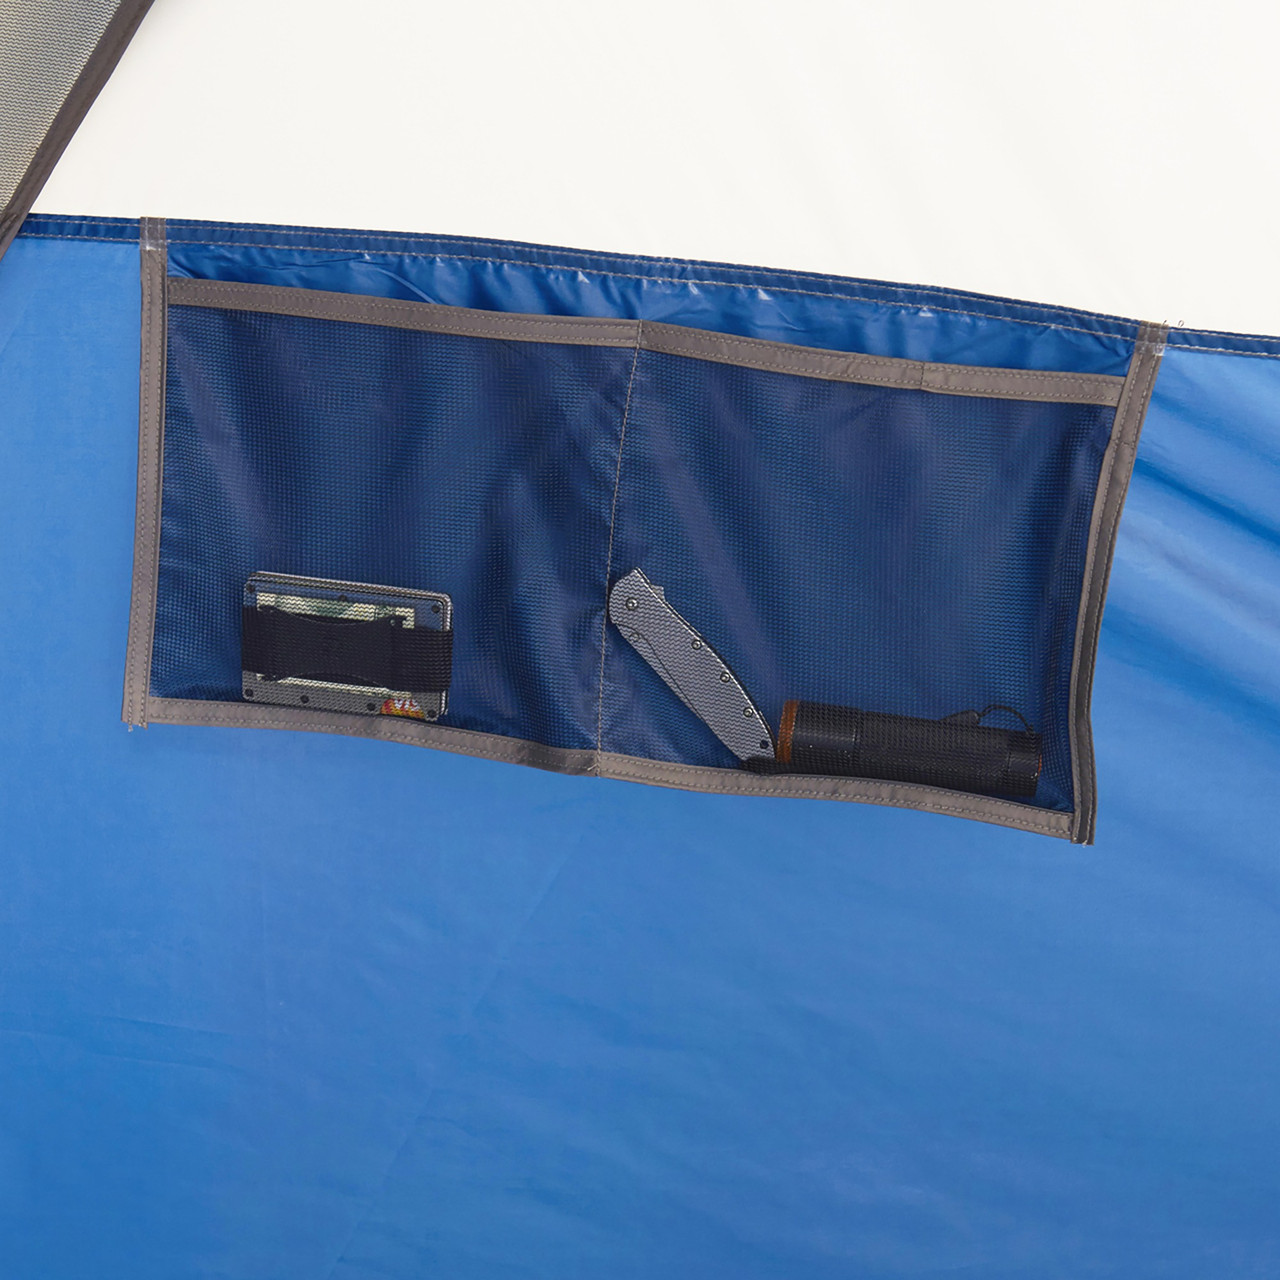 Interior of Wenzel Pinyon 10 Person Dome Tent, blue/white, showing hanging accessory pocket